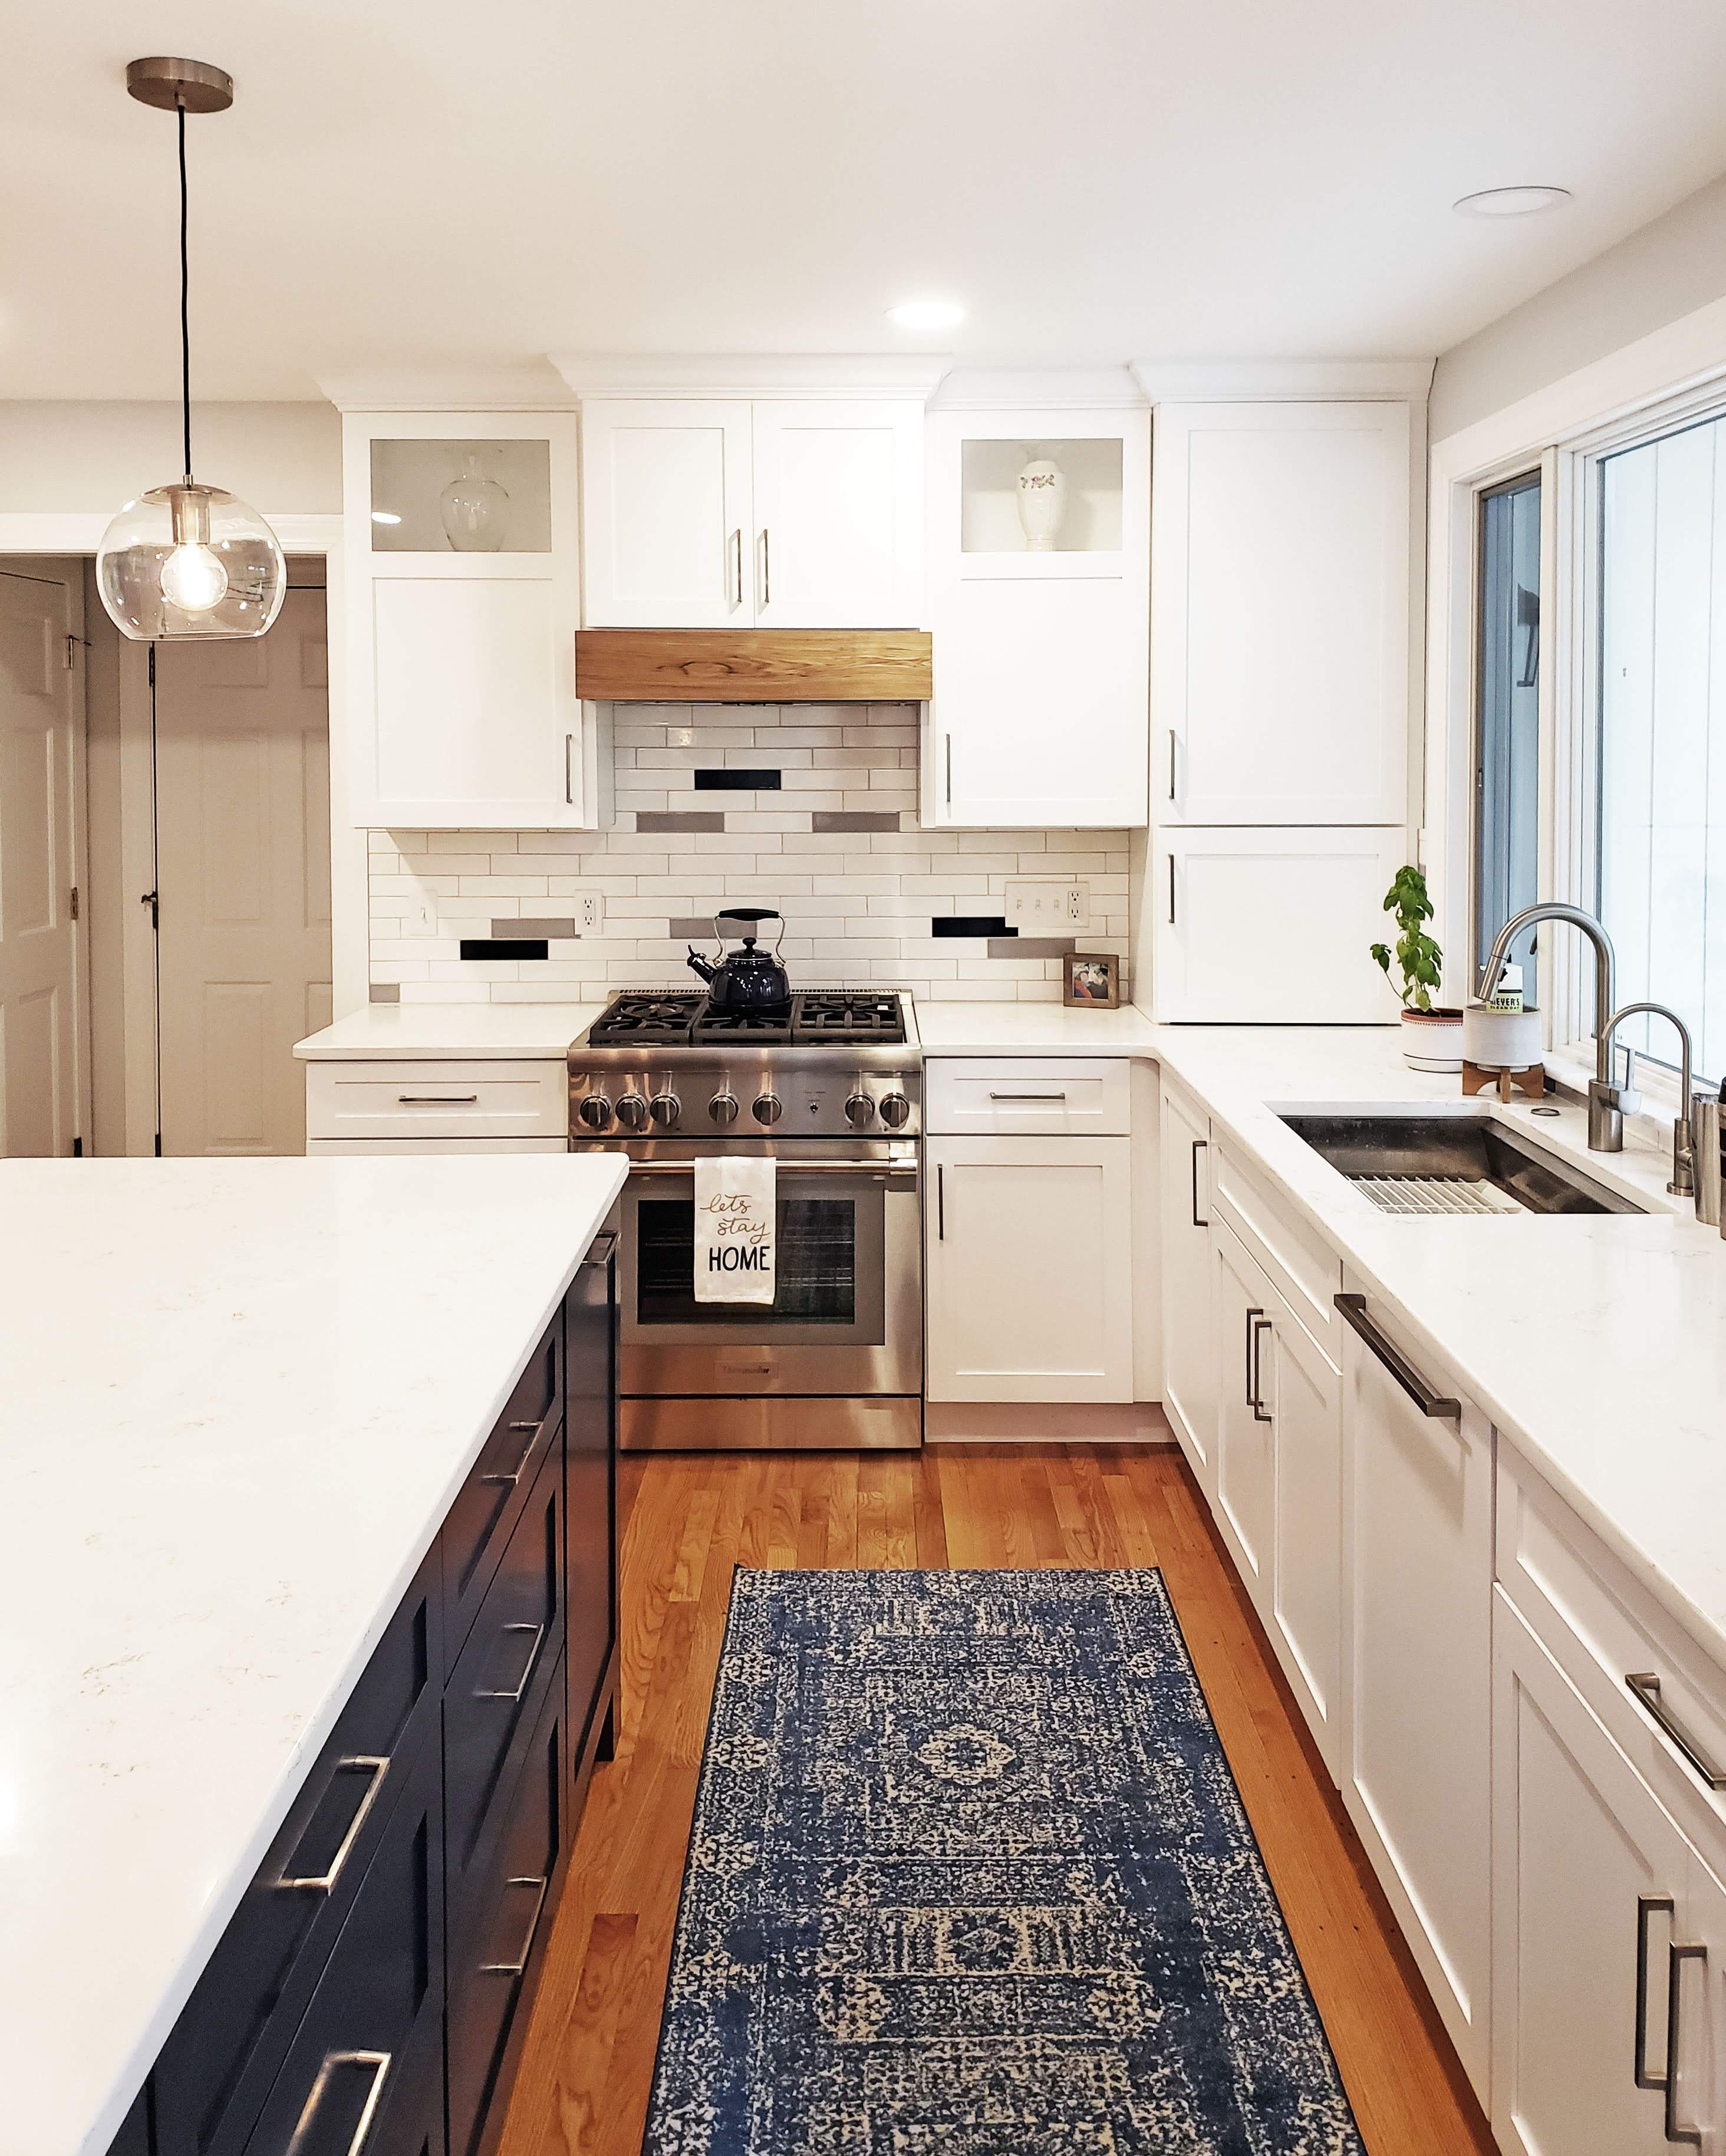 Designers Installers Re Modelers Kitchen Kitchen Cabinets Wood Accents